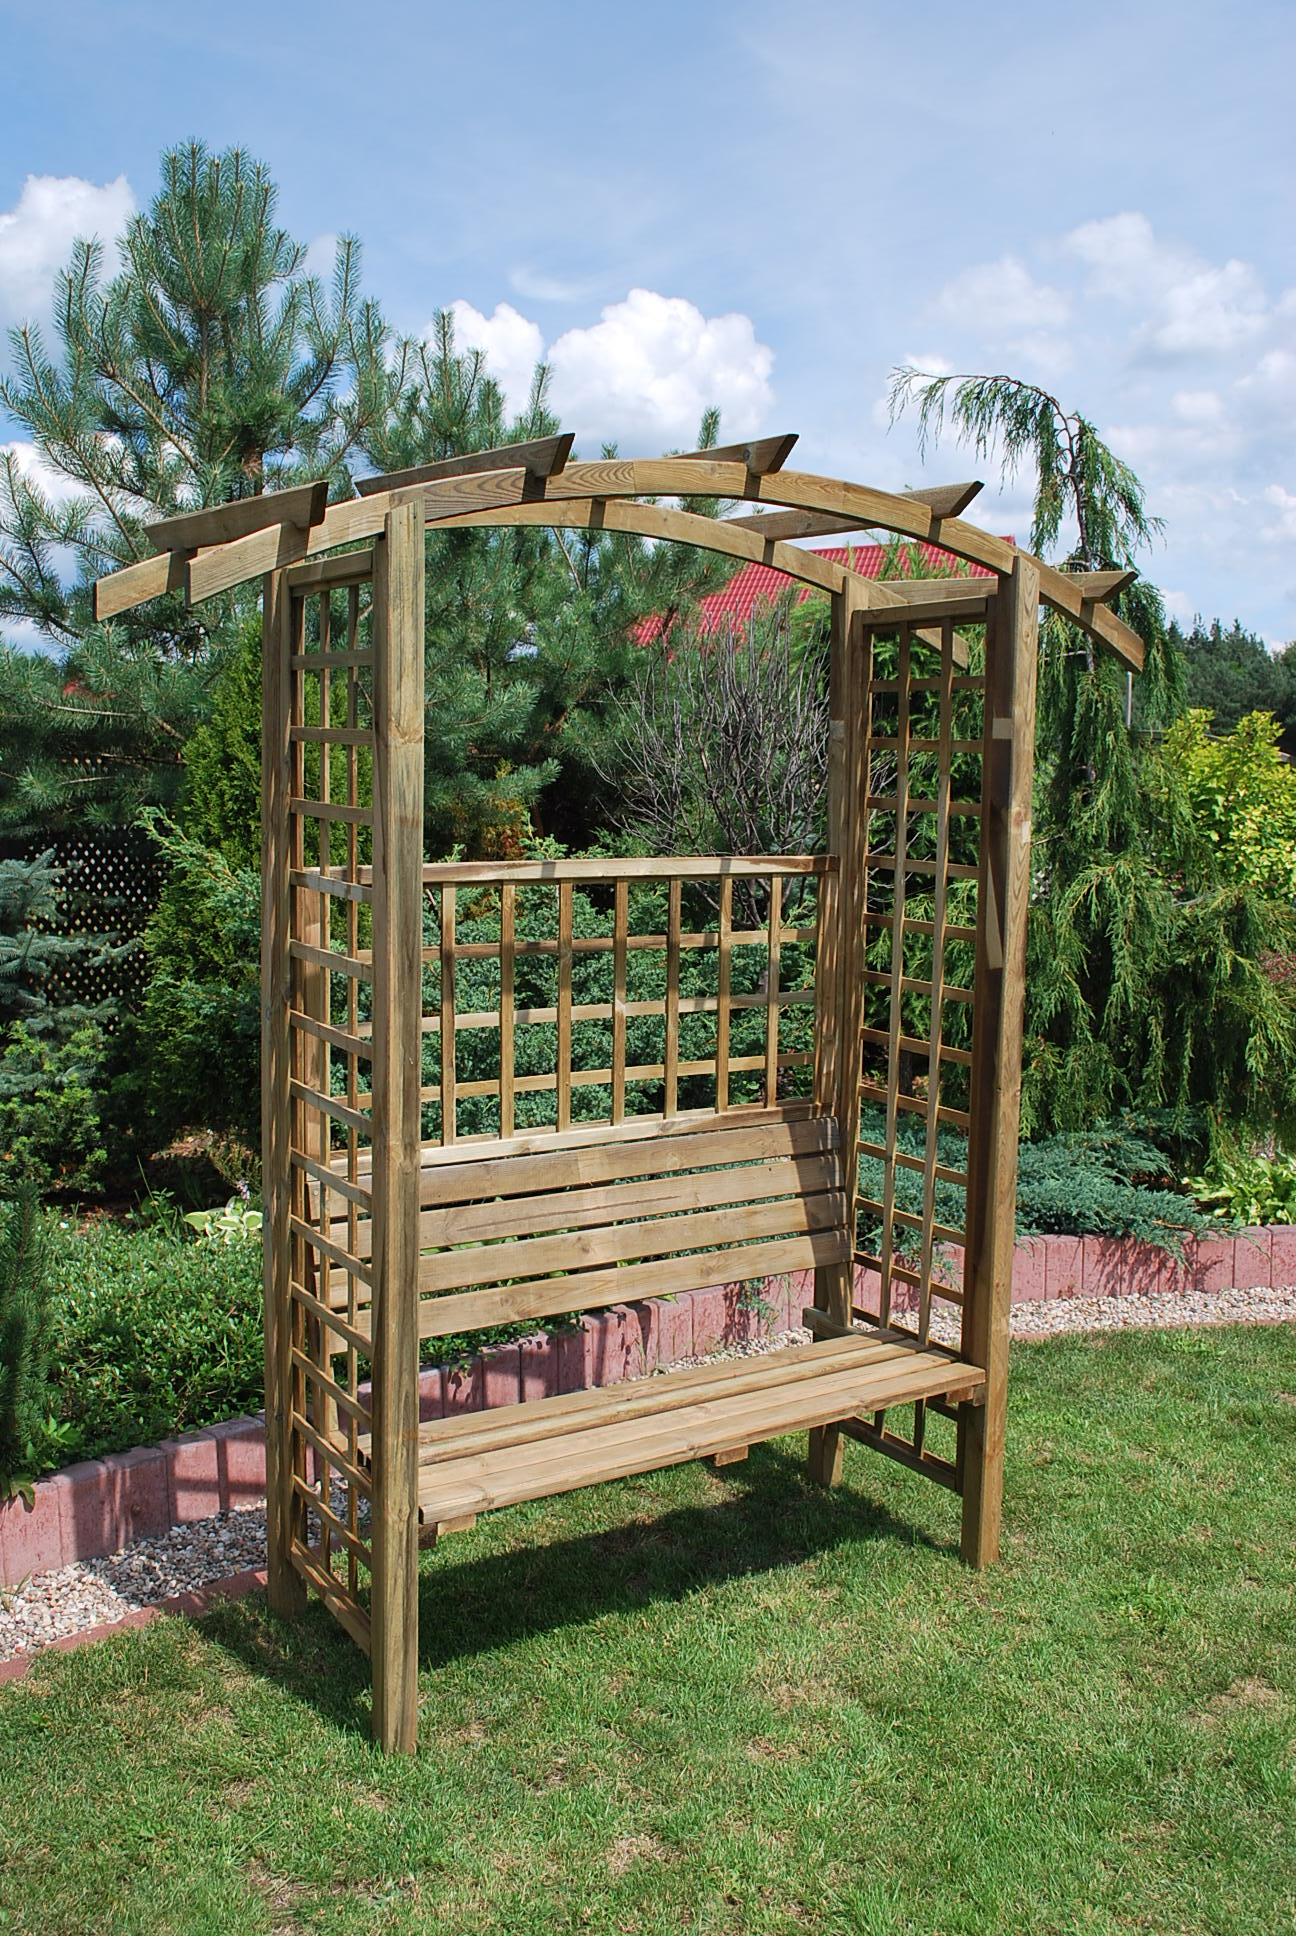 4. WINDSOR ARBOUR